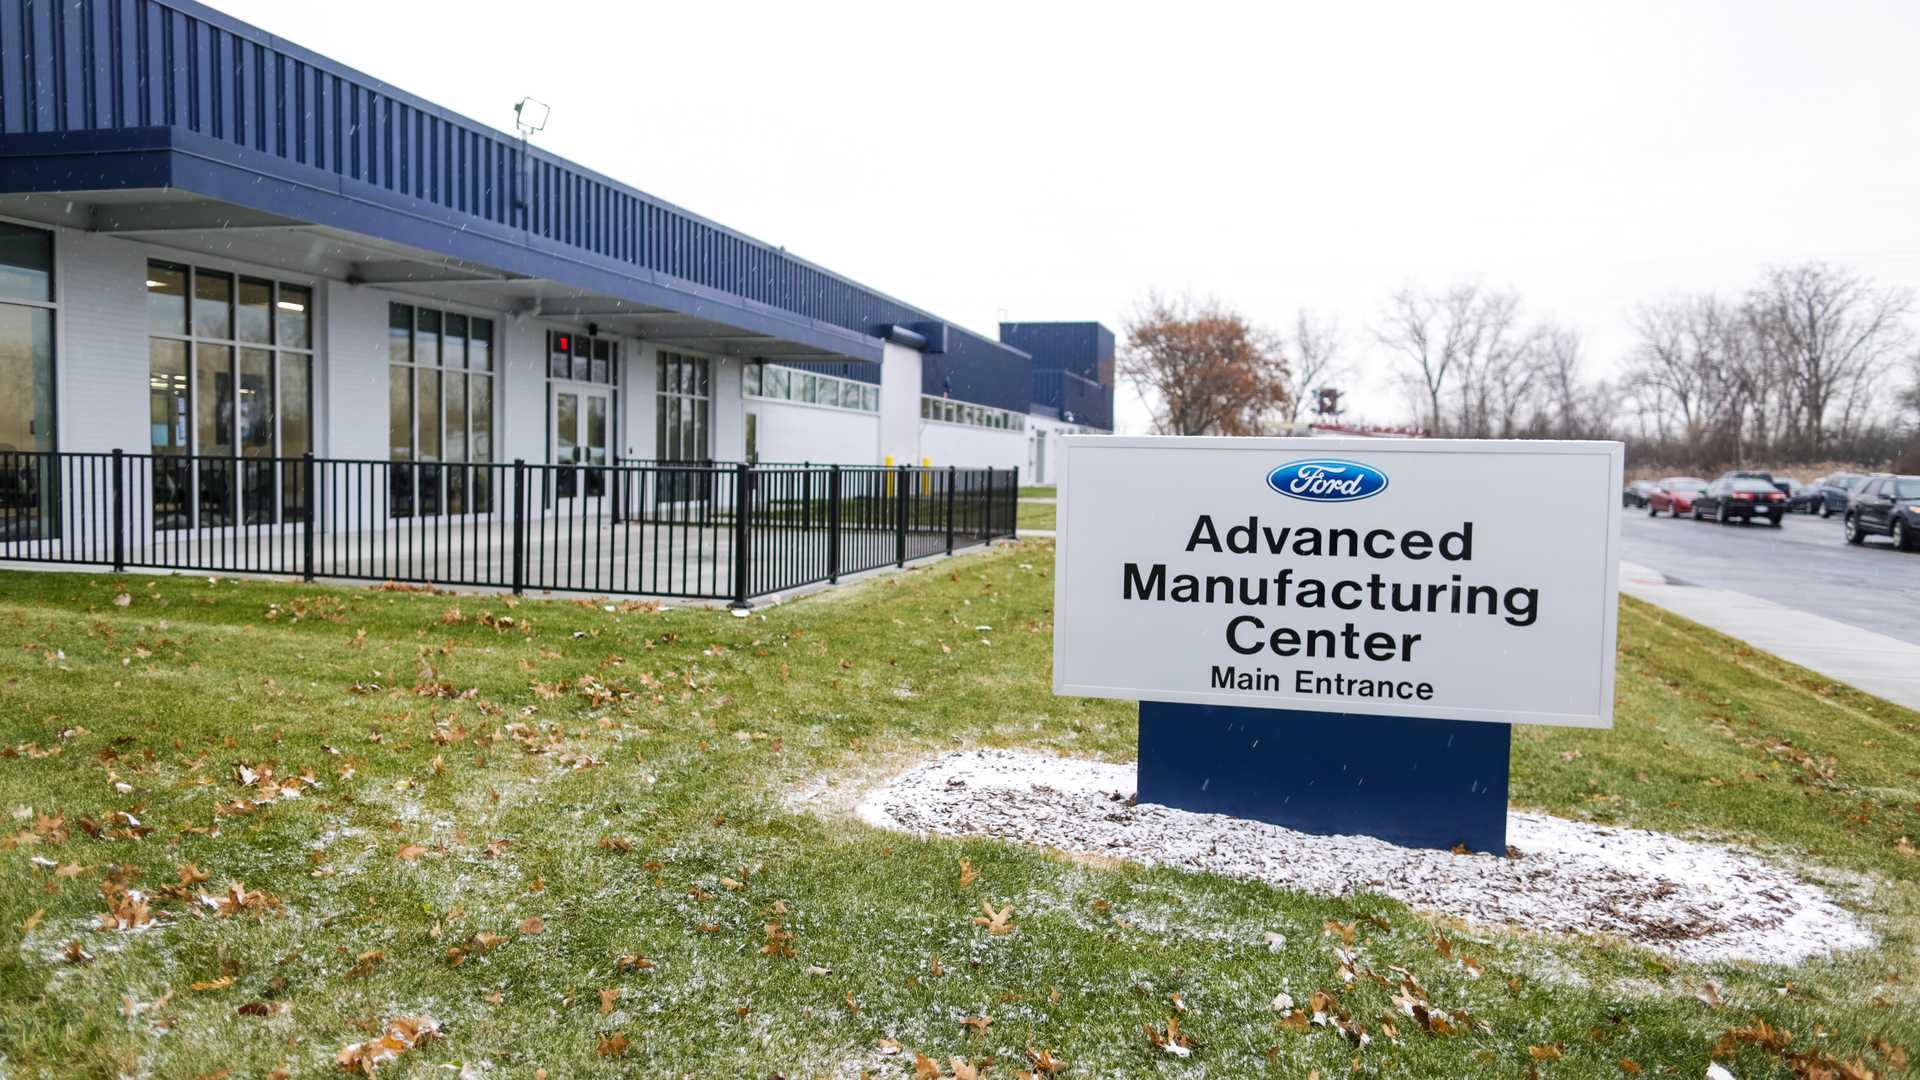 Ford Advanced Manufacturing Center (8)